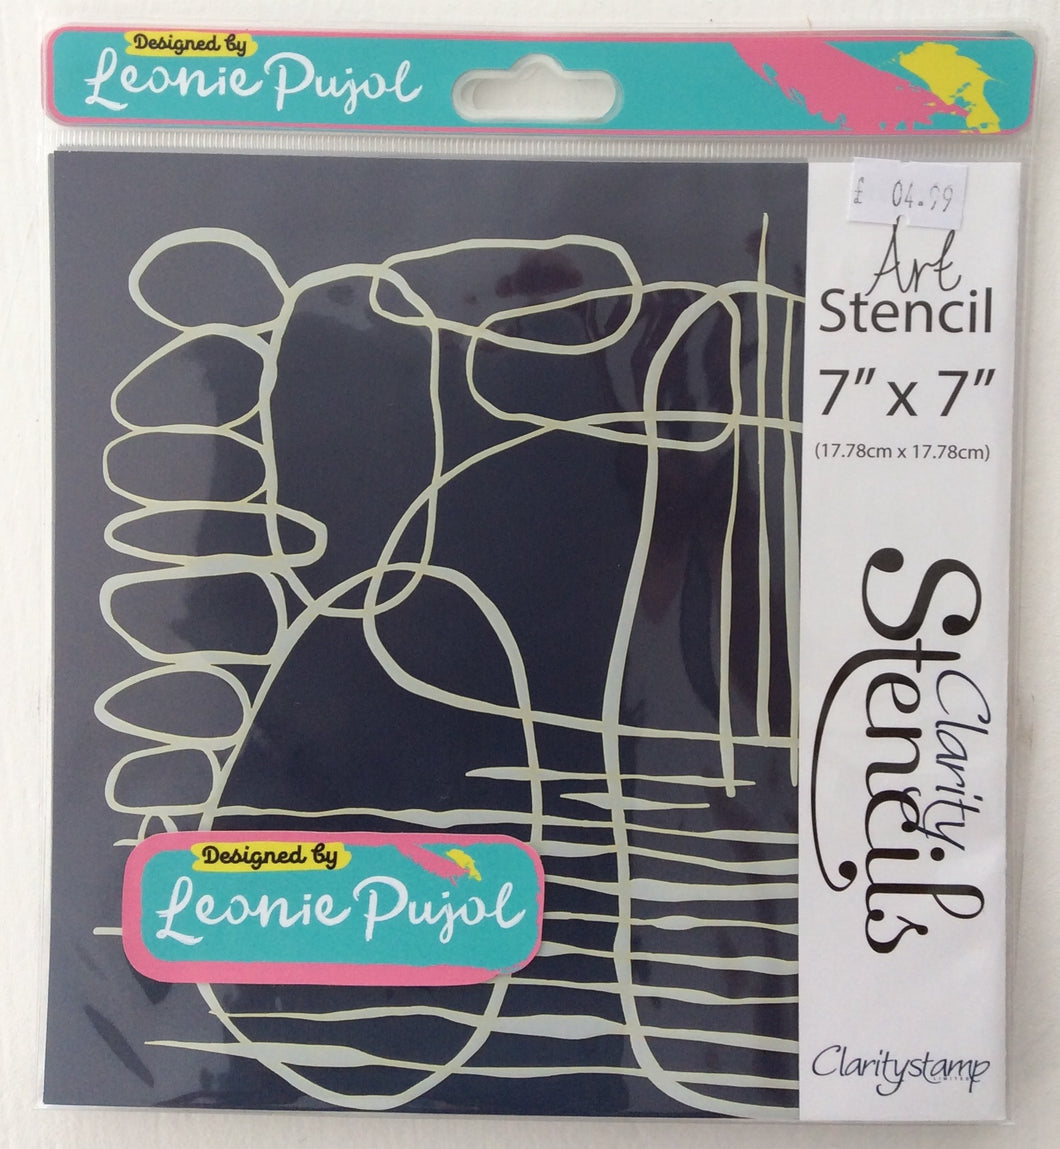 "Clarity Art Stencils by Leonie Pujol - Circles Stripes Abstract Art 7""x 7"""